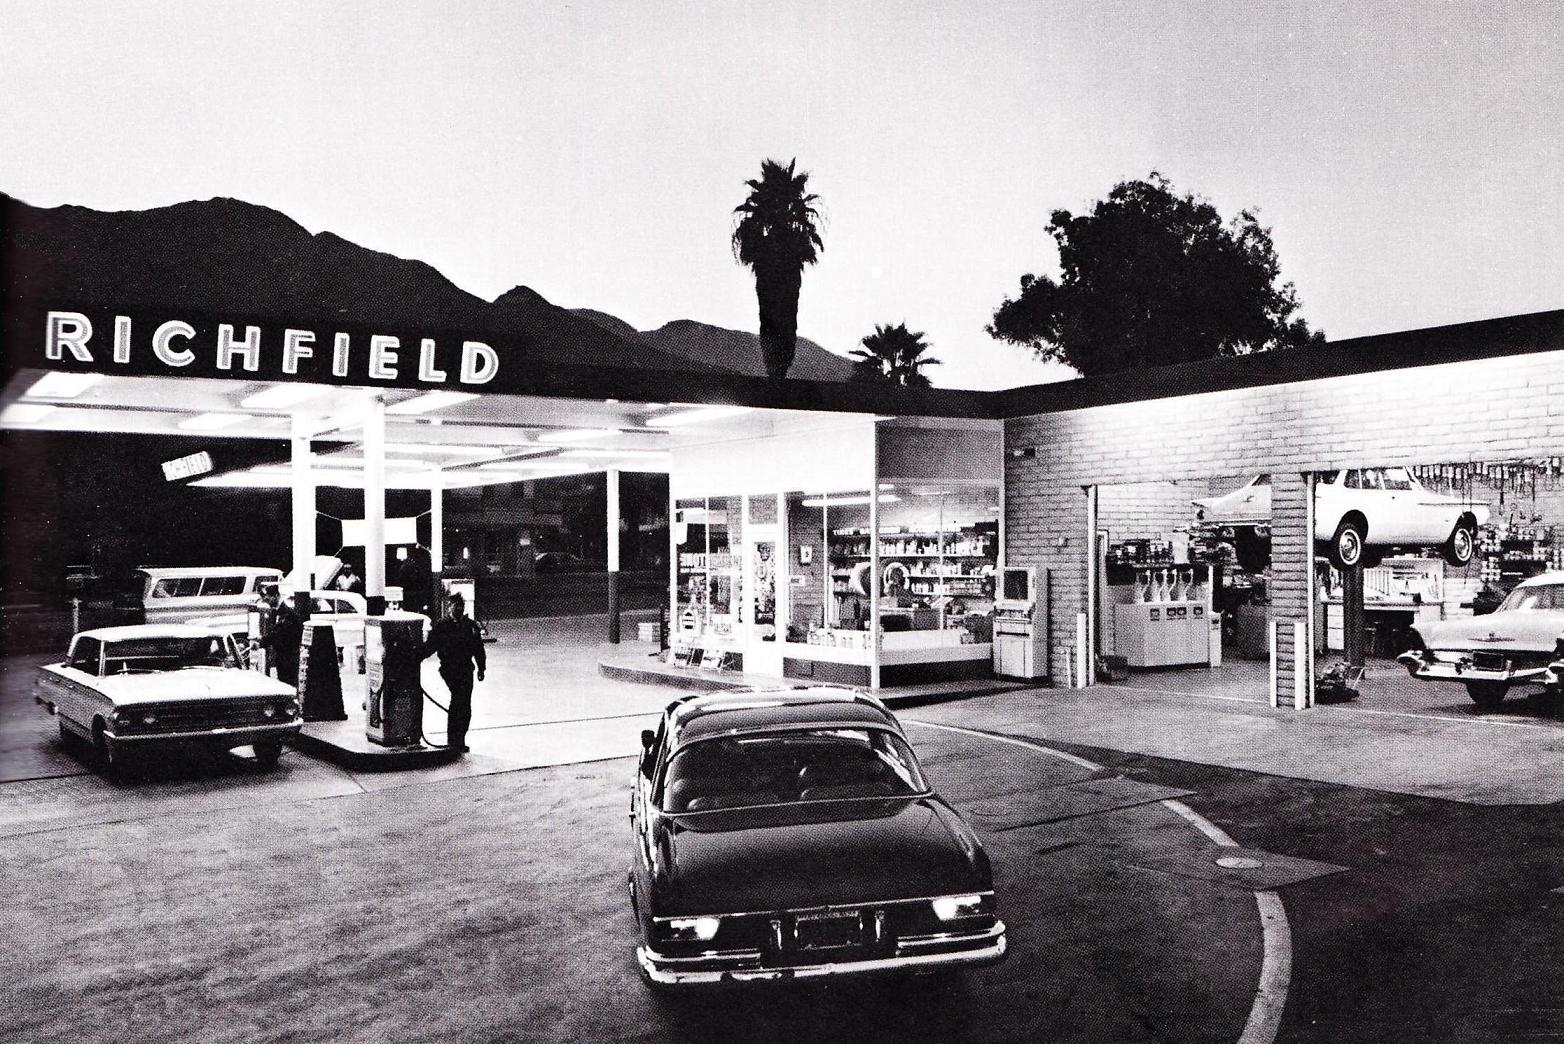 Richfield station - Palm Springs, California U.S.A. - 1963